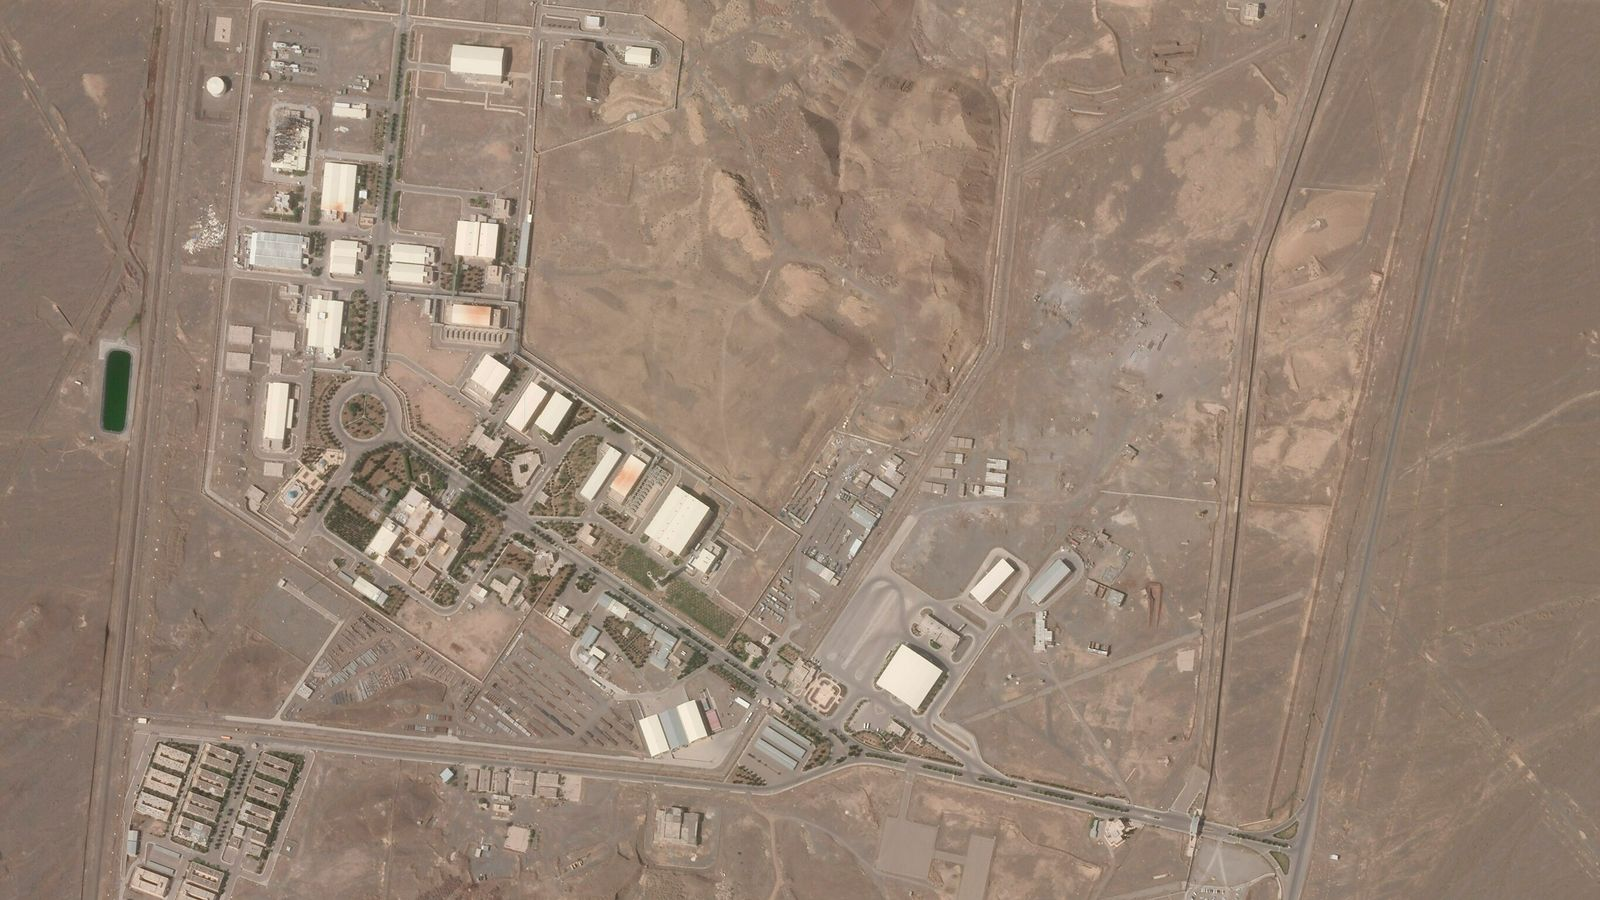 Iran calls blackout at Natanz atomic site 'nuclear terrorism' after country restarted centrifuges